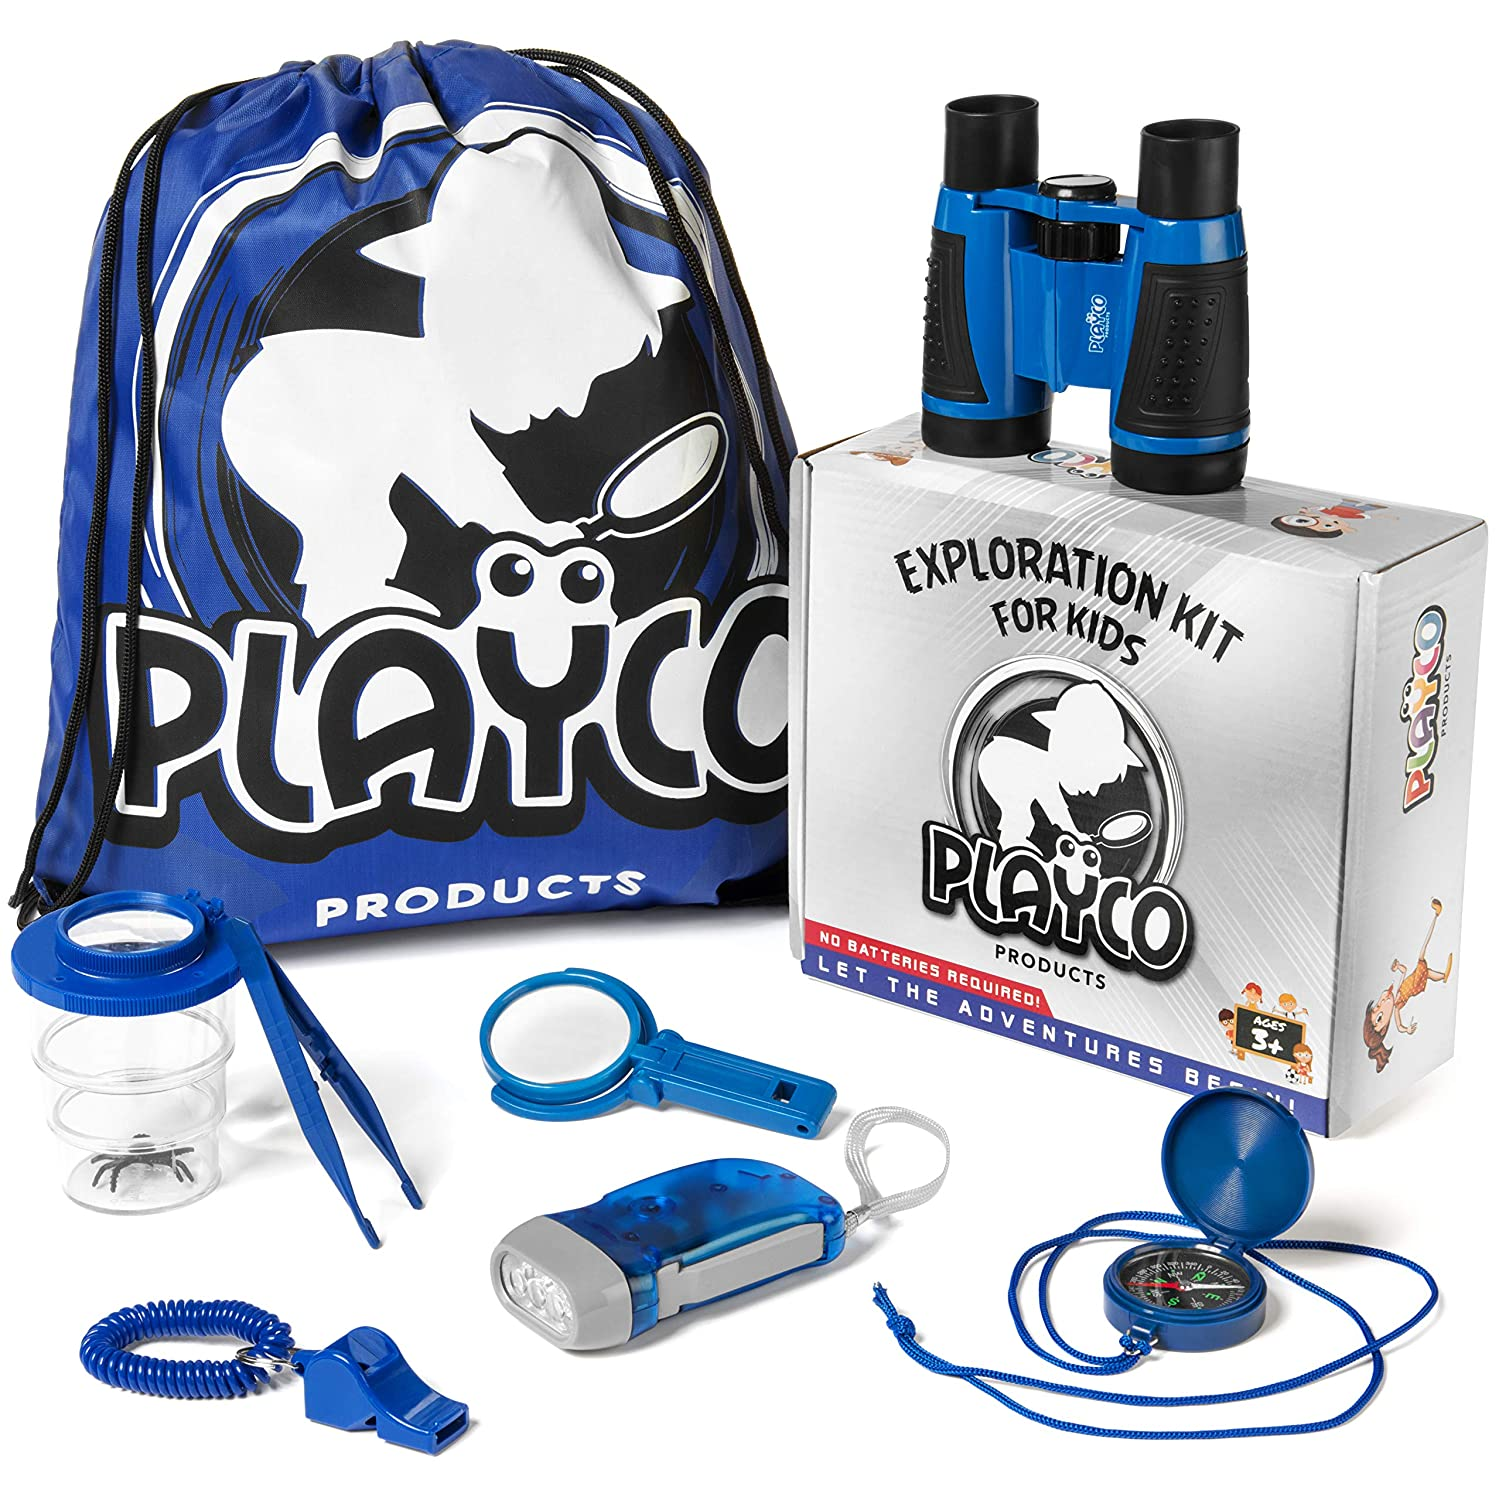 and Bug Catching Kit Playco Products Kids Explorer Kit Flashlight Magnifying Glass Whistle Compass Fun Toys for Your Childrens Next Camping Hiking or Outdoor Adventure Includes Binoculars